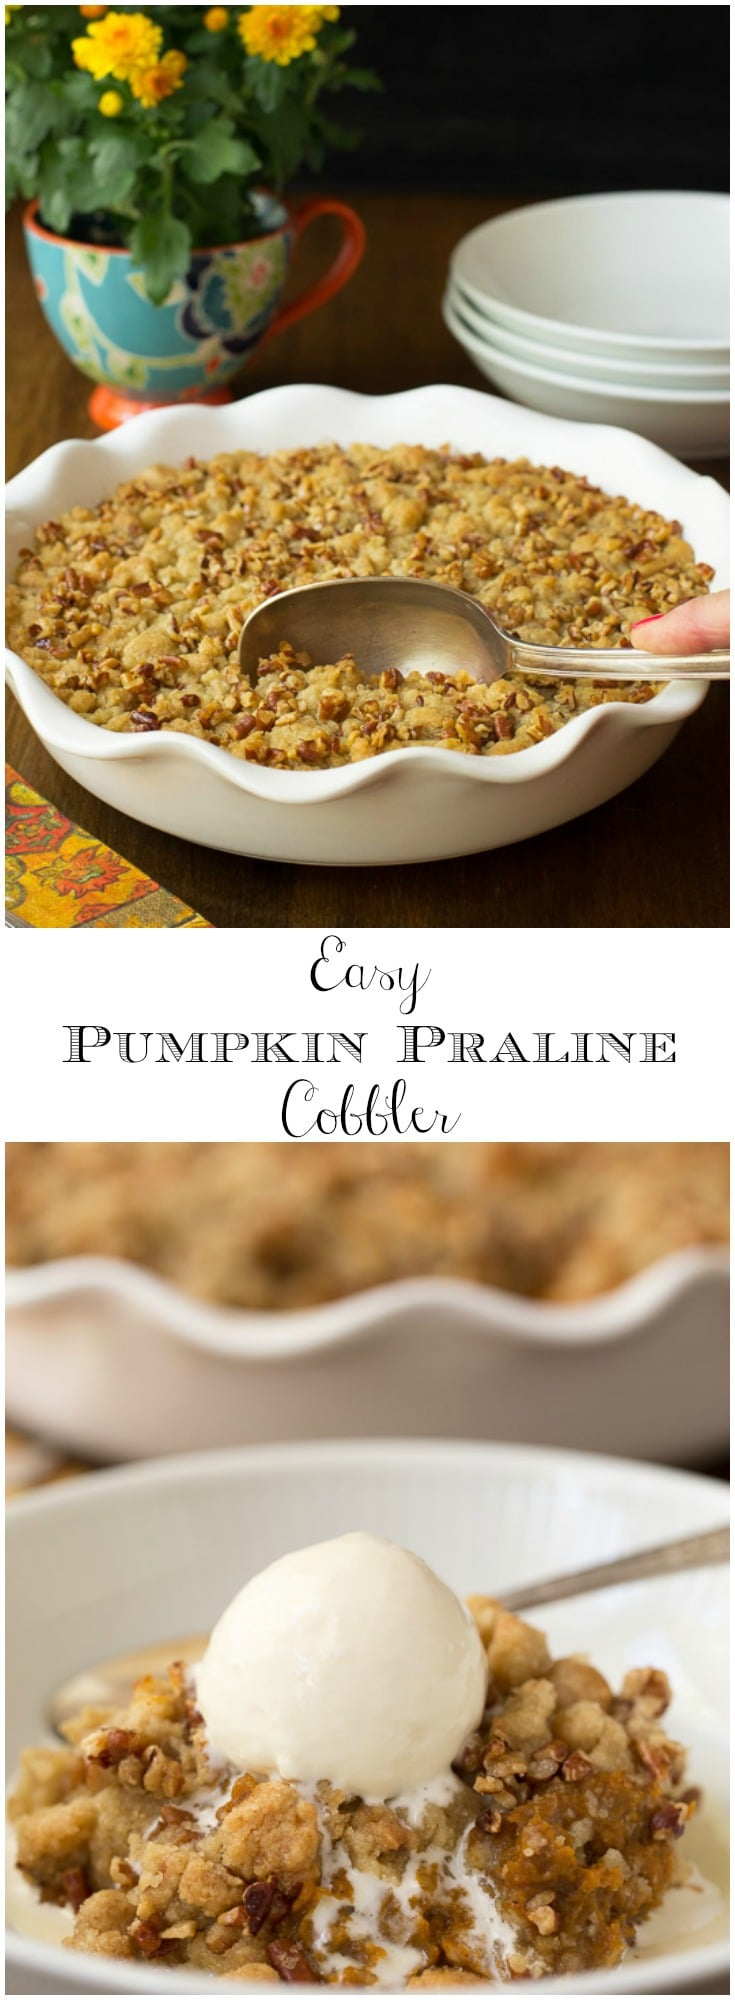 A buttery crumbly topping and lots of pumpkin filling makes a crazy good Fall dessert that comes together in less than 15 minutes!